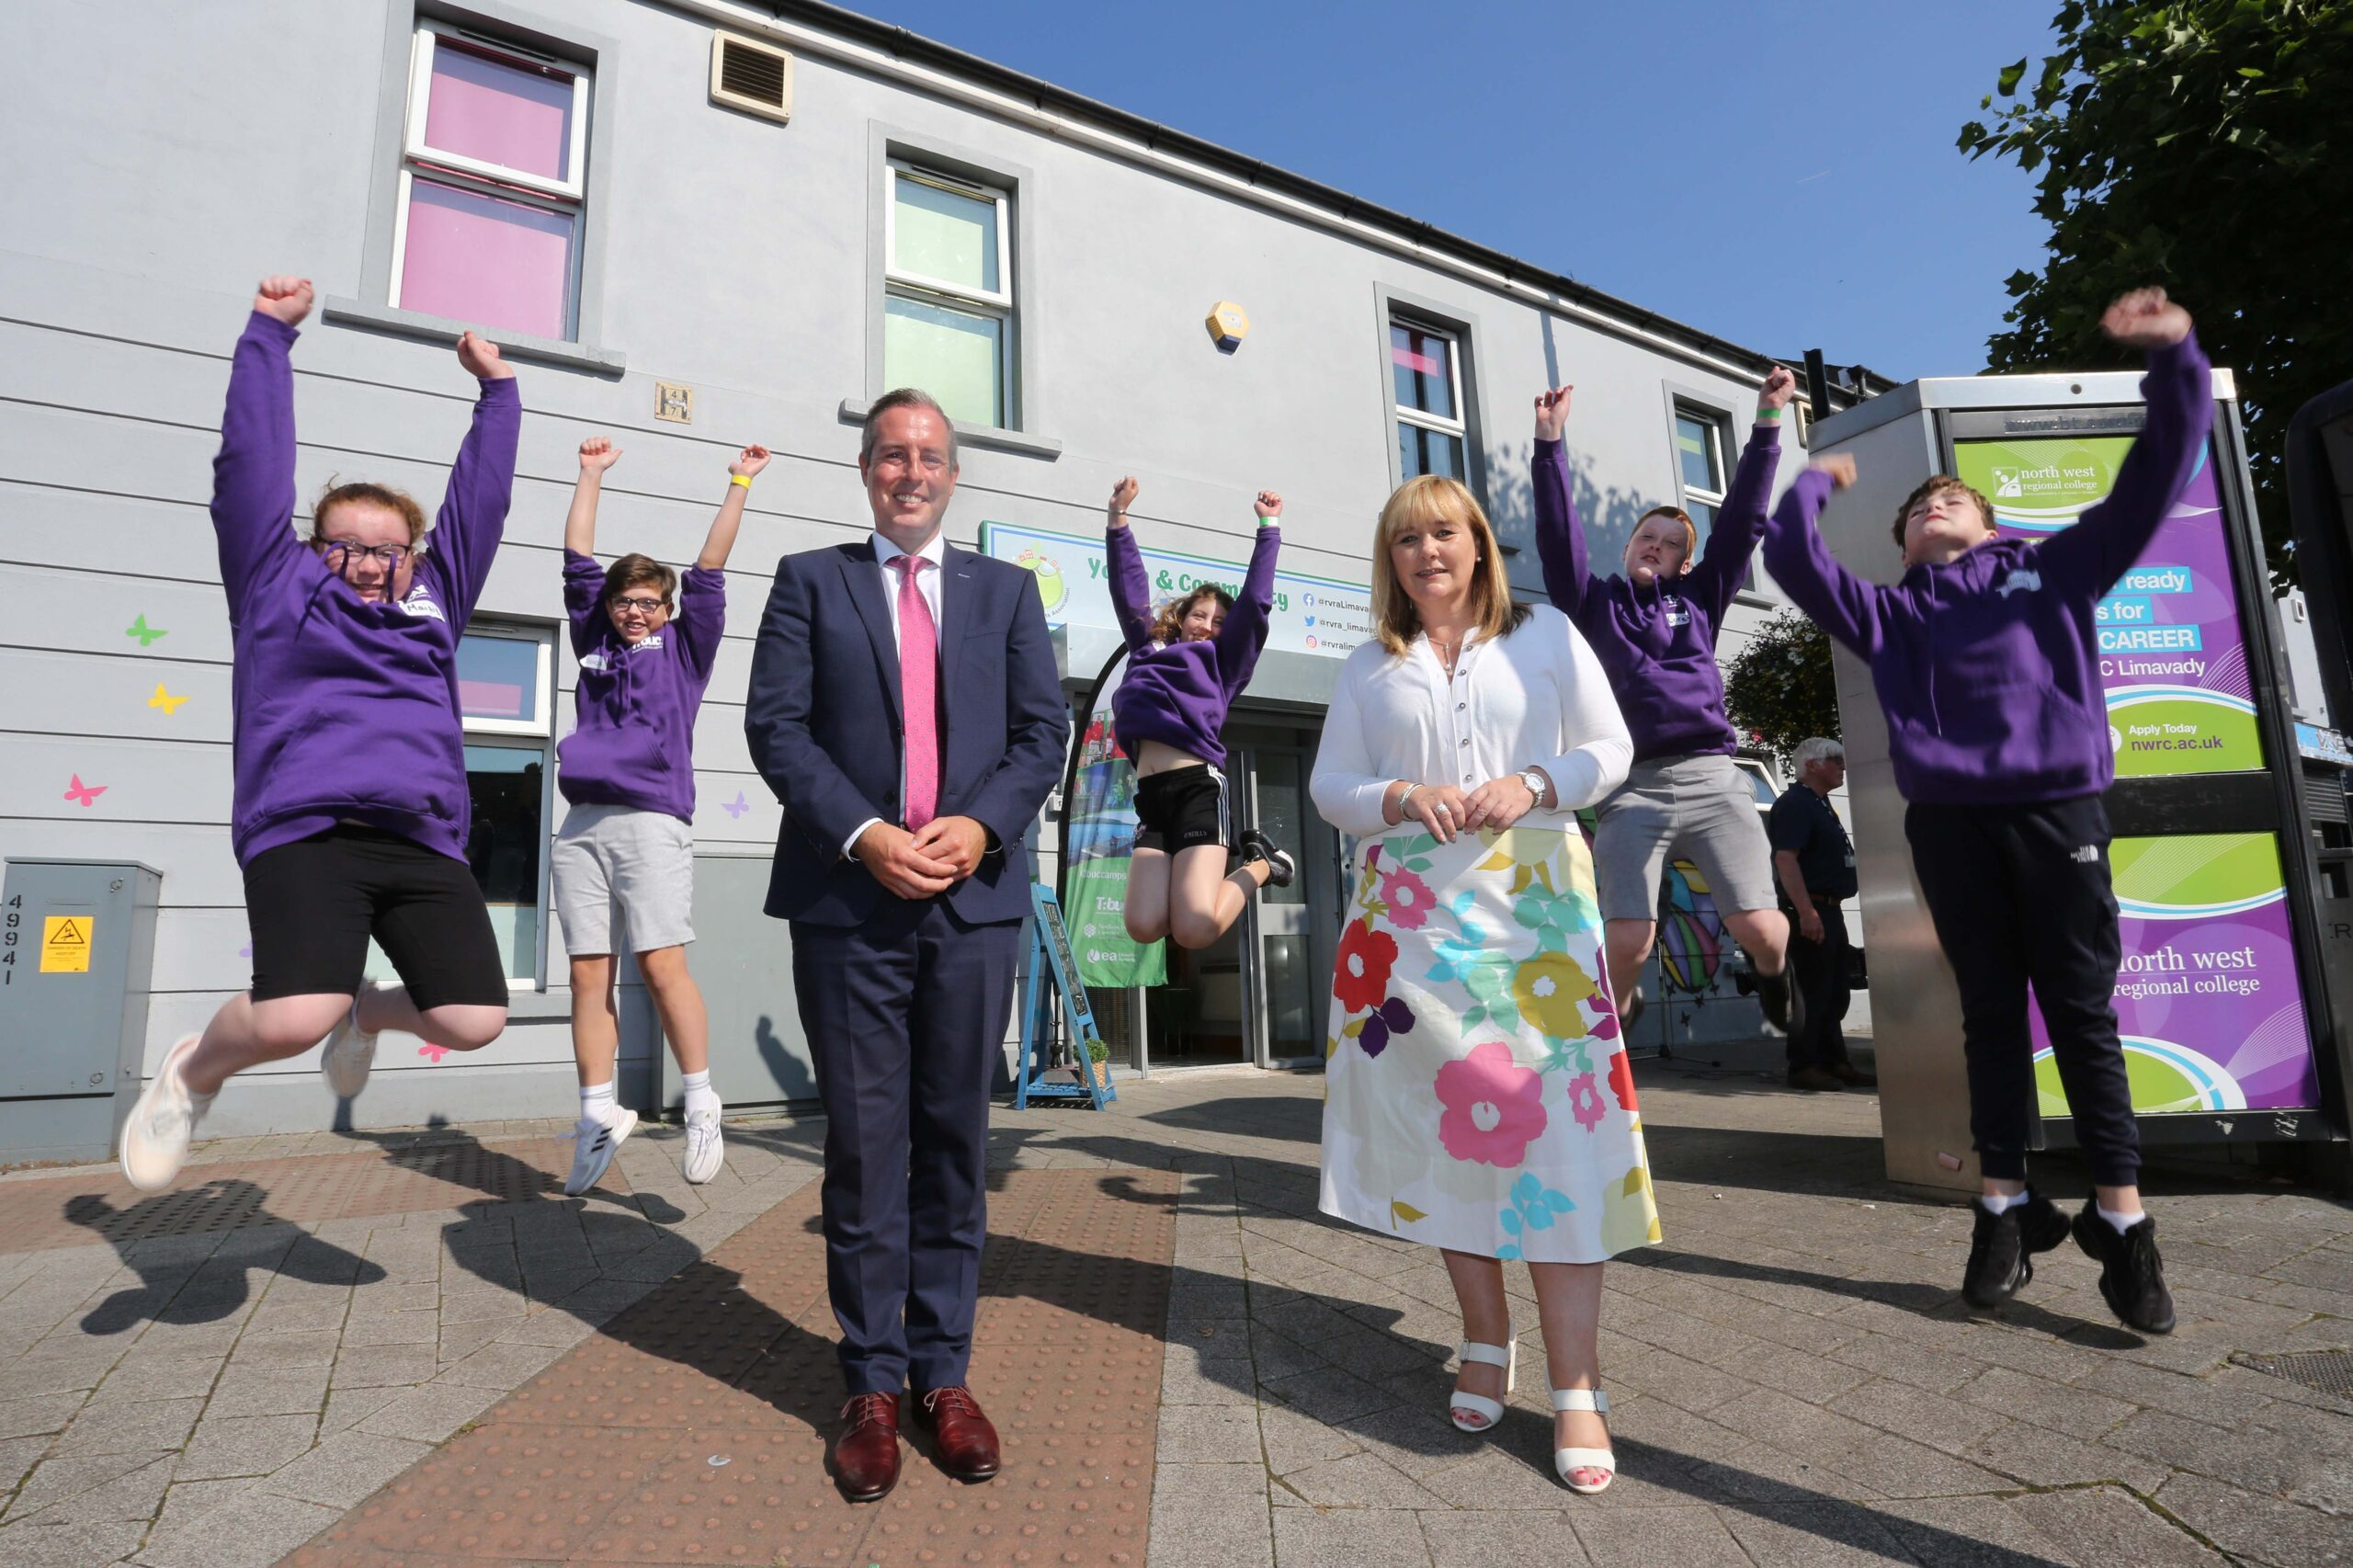 Ministers hail positive impact of good relations projects - Newry Times - newry news facebook